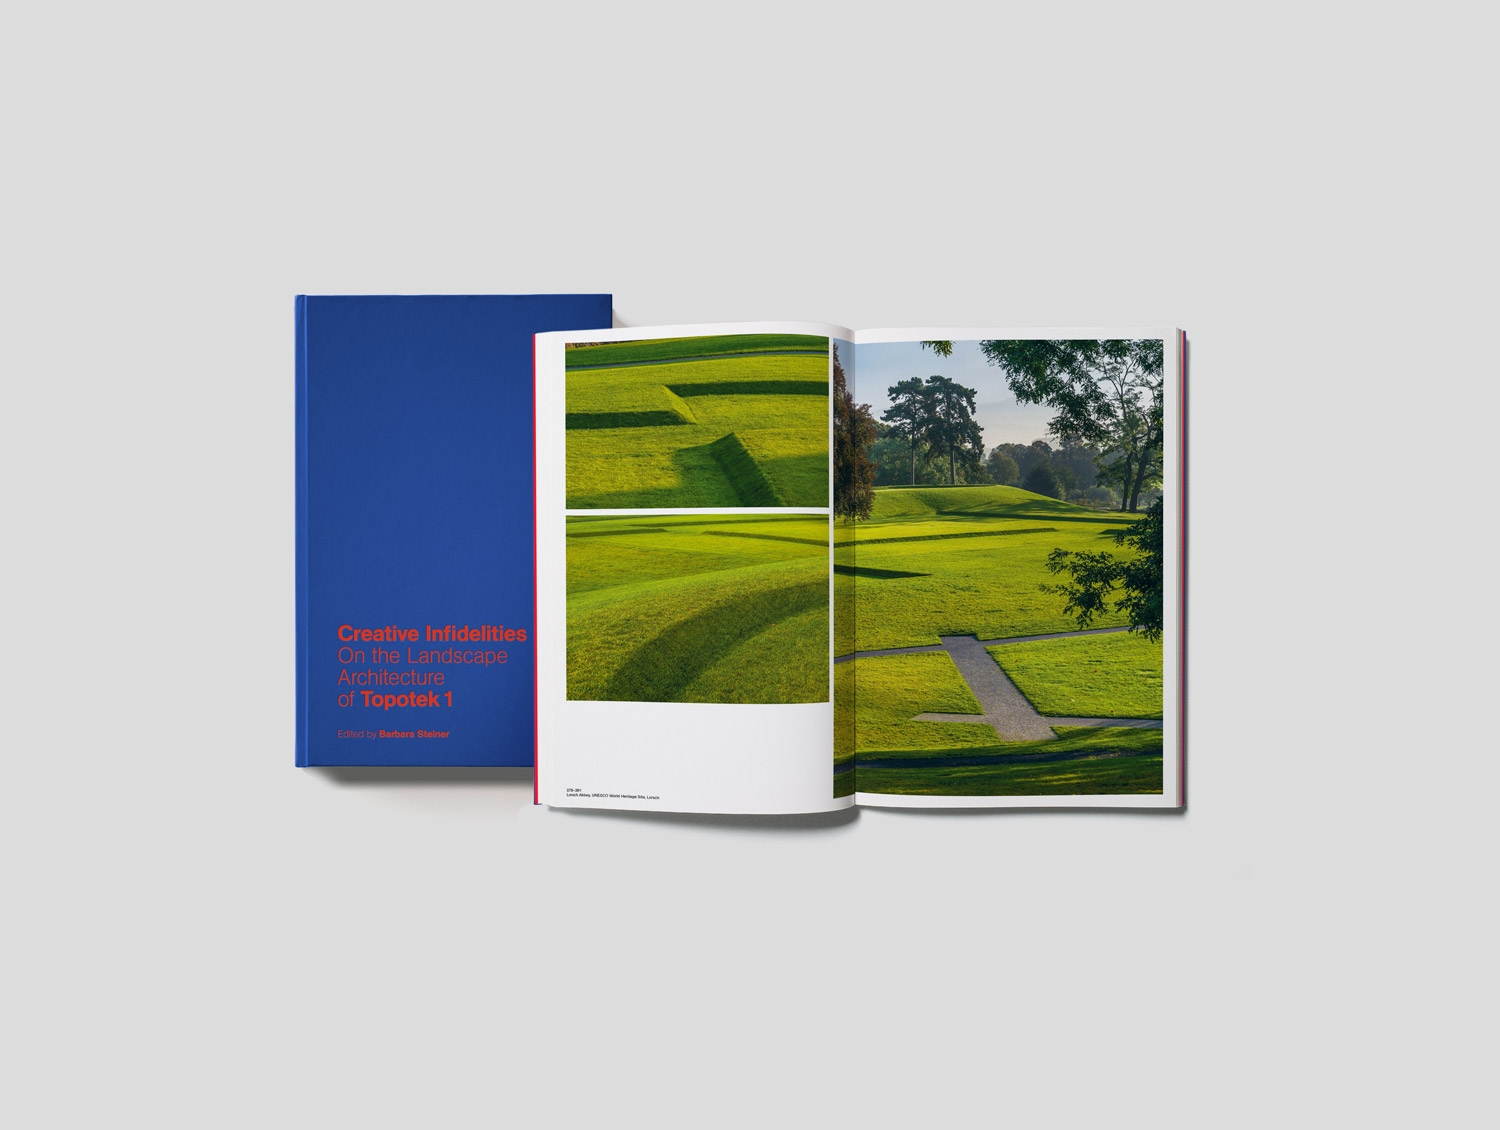 Creative Infidelities. On the Landscape Architecture of Topotek 1. Edited by Barbara Steiner. 440 pages. Jovis Verlag. Berlin 2016